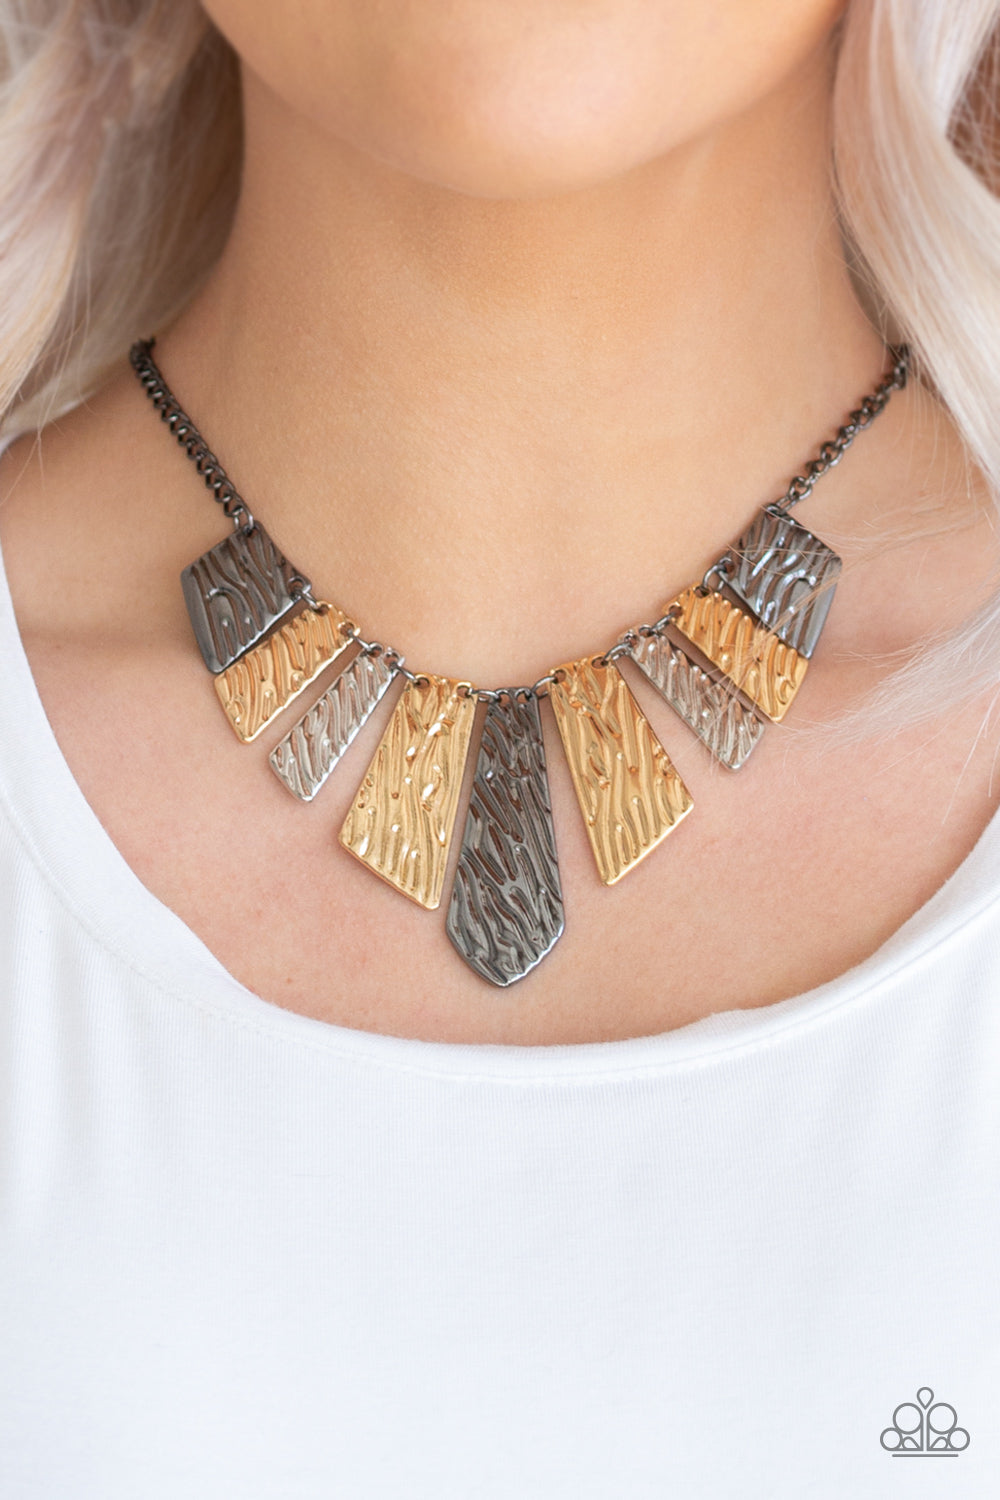 Paparazzi Accessories Texture Tigress - Multi Necklaces